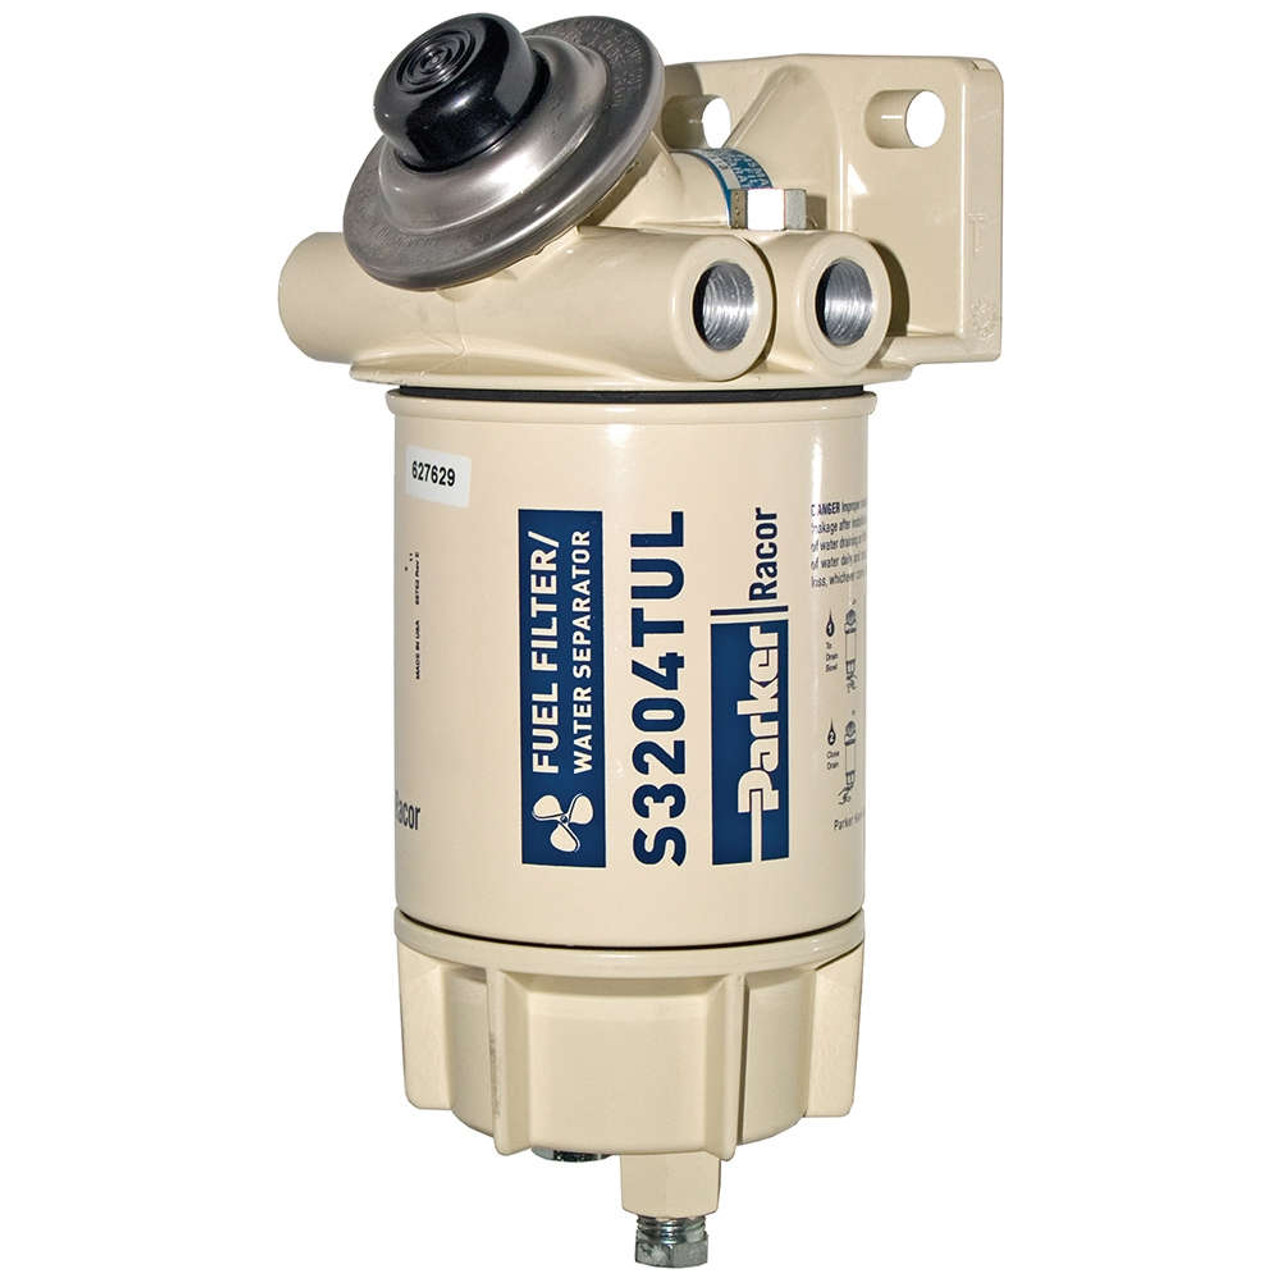 racor aquabloc marine 3 8 in 45 gph spin on diesel fuel filterracor aquabloc marine 3 8 in 45 gph spin on diesel fuel filter water separator assembly 6 qty  [ 1000 x 1000 Pixel ]